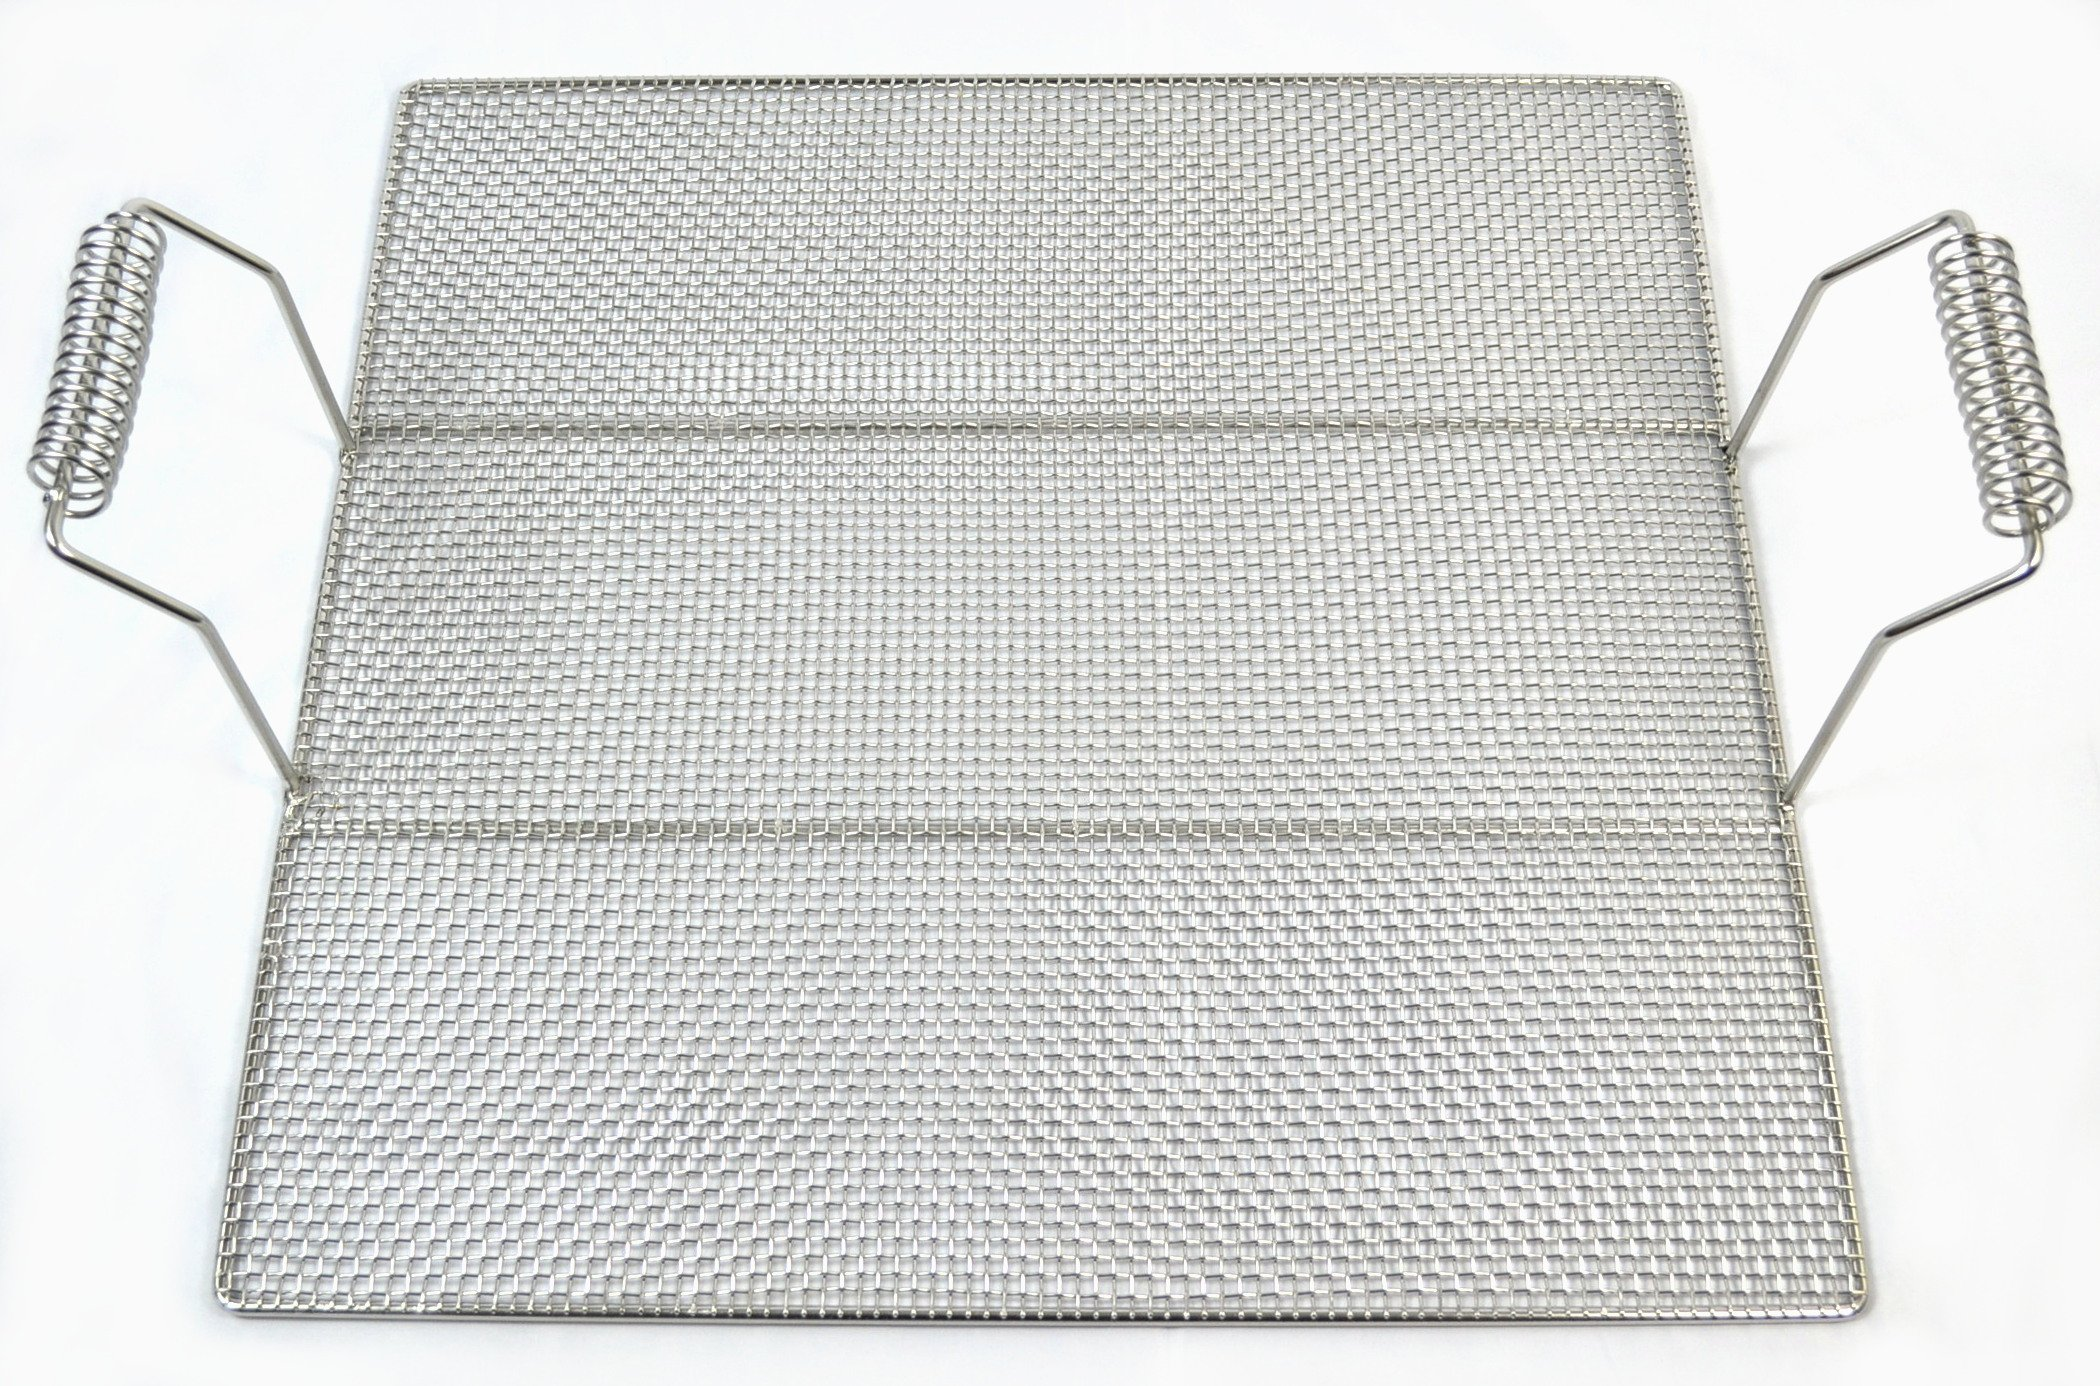 Stainless Steel Wire Mesh Grid with Handles, 23'' x 23'' (1)